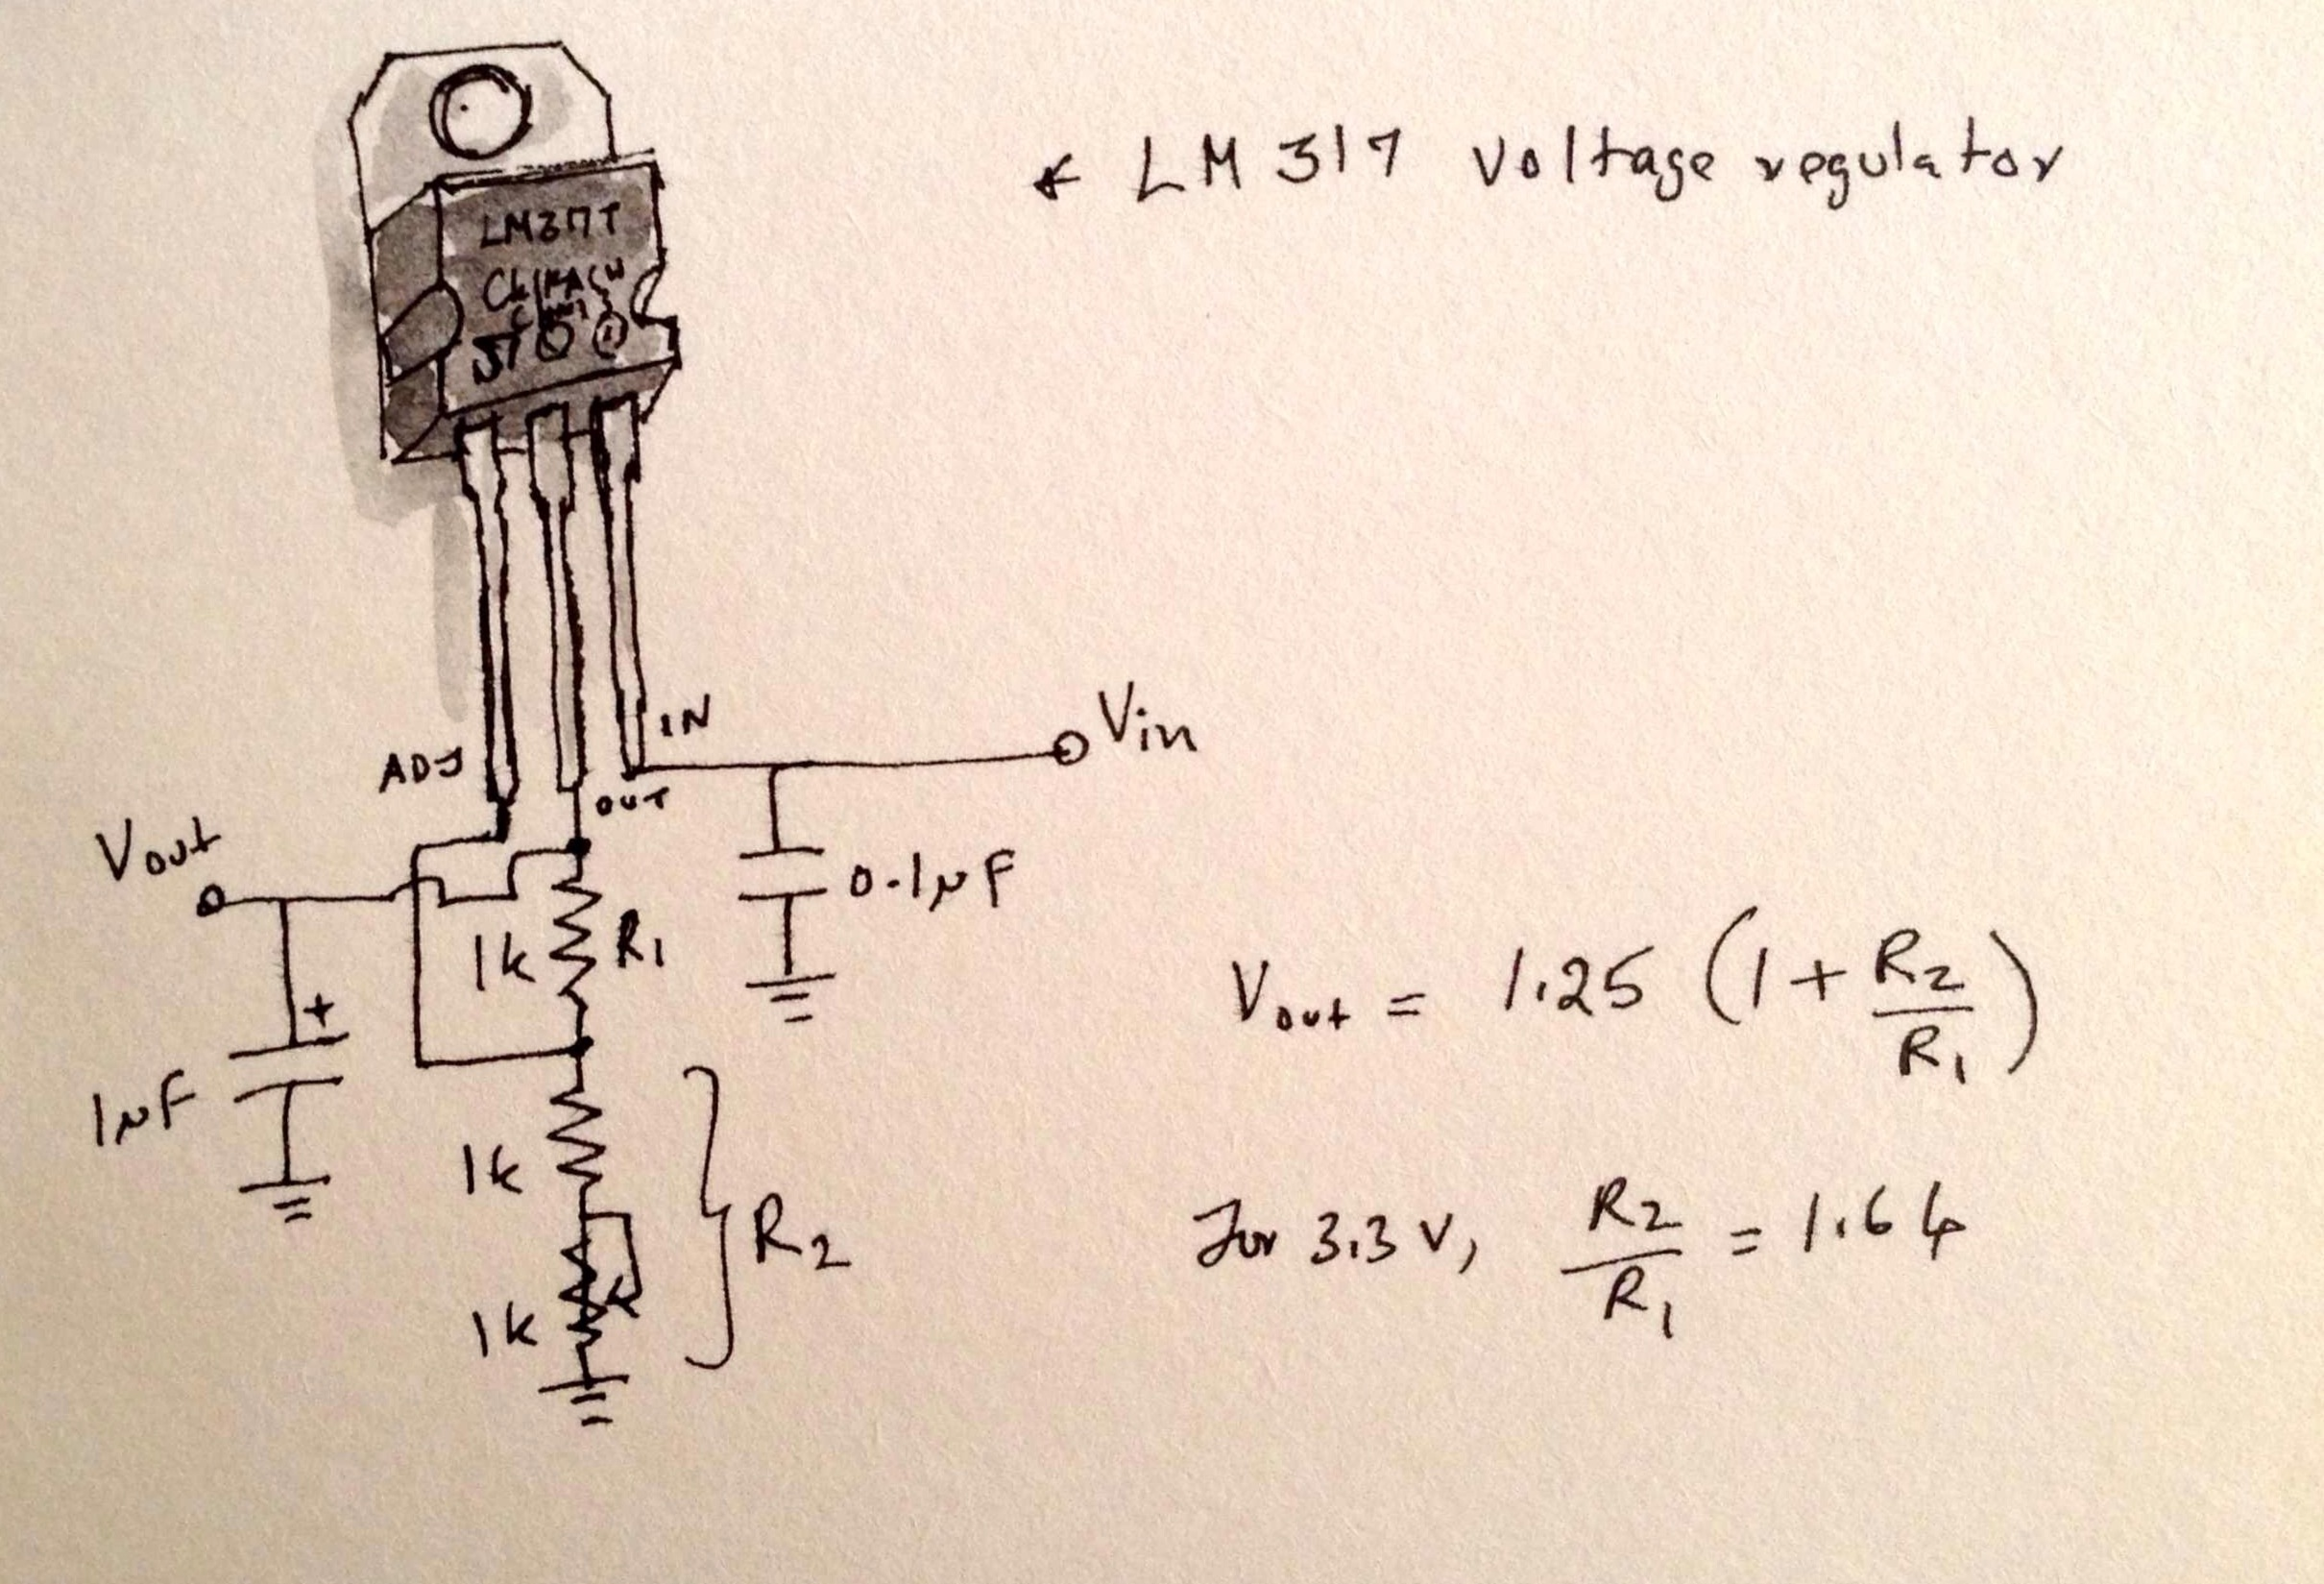 Electronic Voltage Regulator Circuit Diagram Electrical Wiring Adjustable Ac Schematic